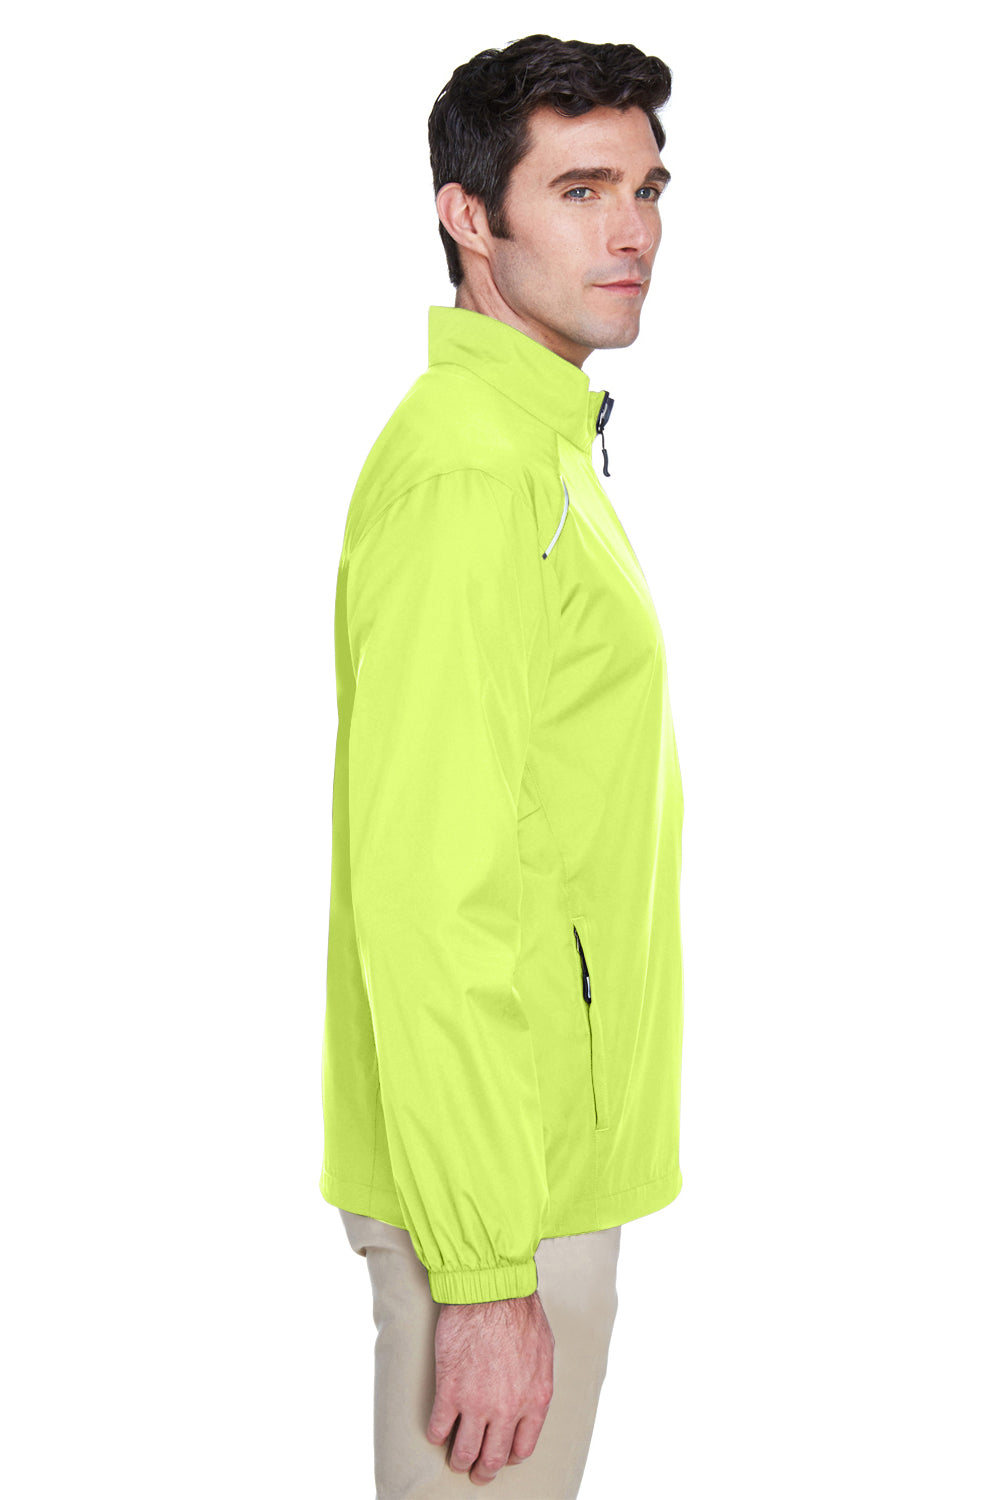 Core 365 88183 Mens Motivate Water Resistant Full Zip Jacket Safety Yellow Side